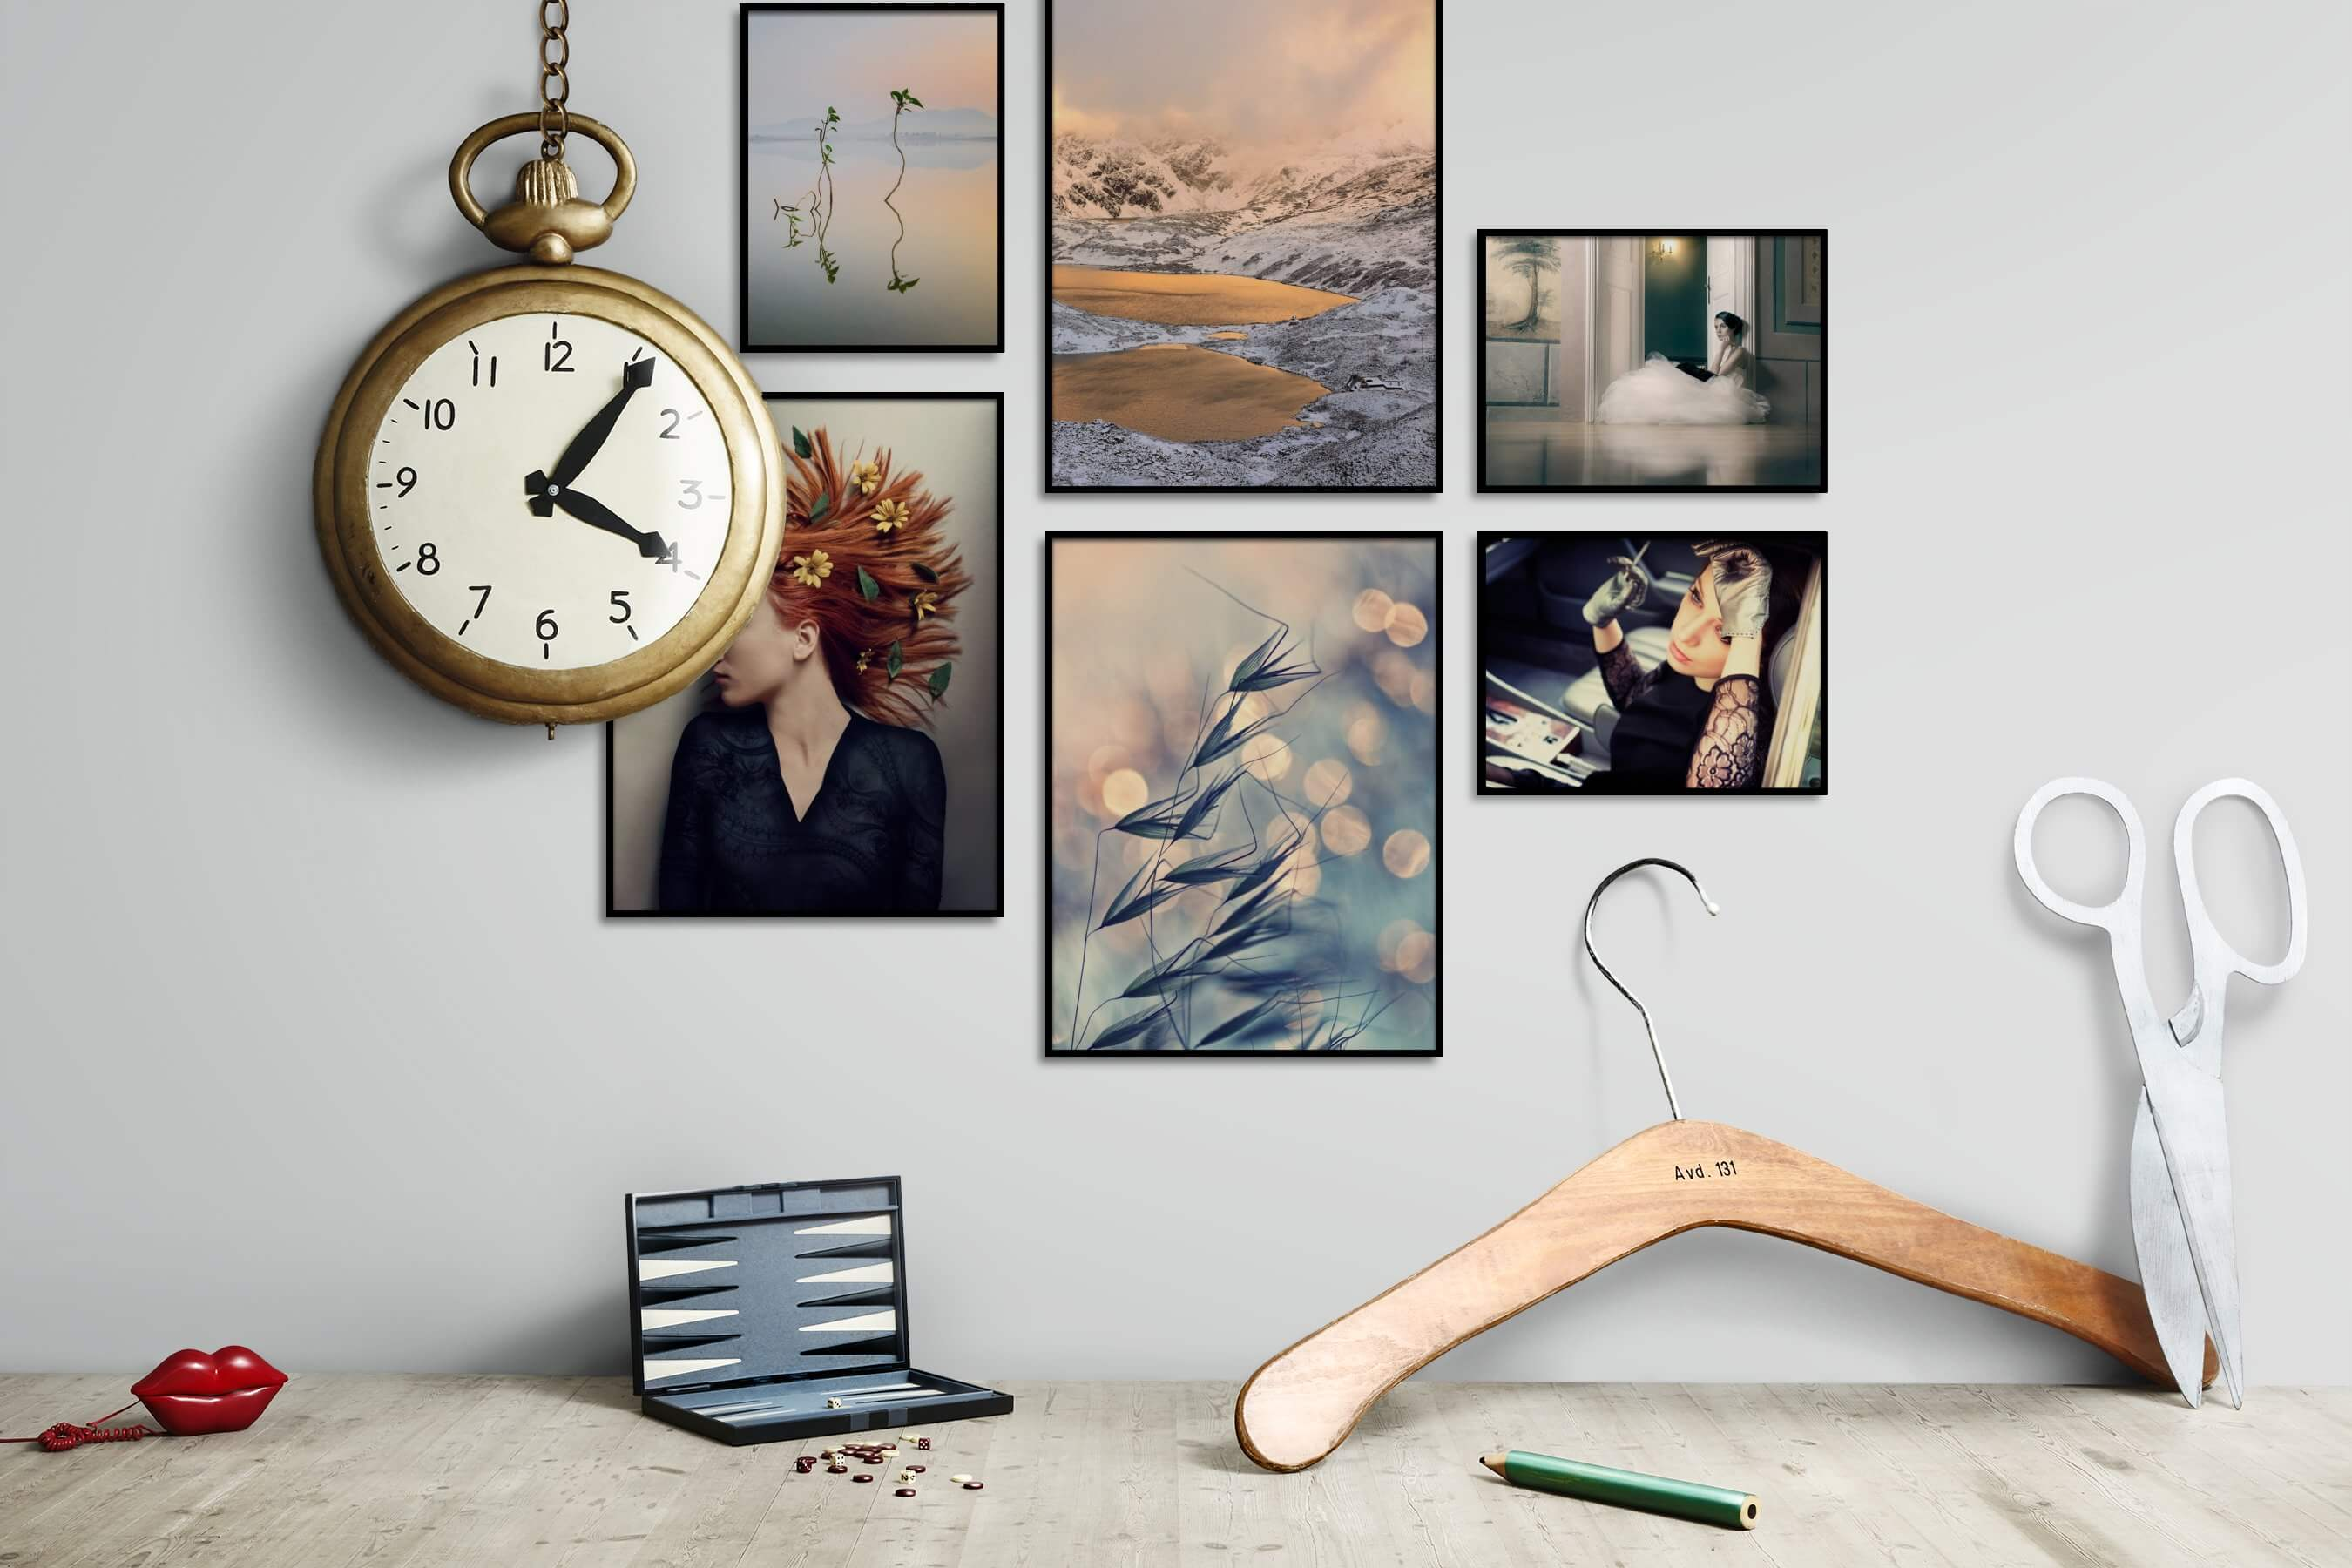 Gallery wall idea with six framed pictures arranged on a wall depicting For the Minimalist, Nature, Mindfulness, Fashion & Beauty, For the Moderate, and Flowers & Plants